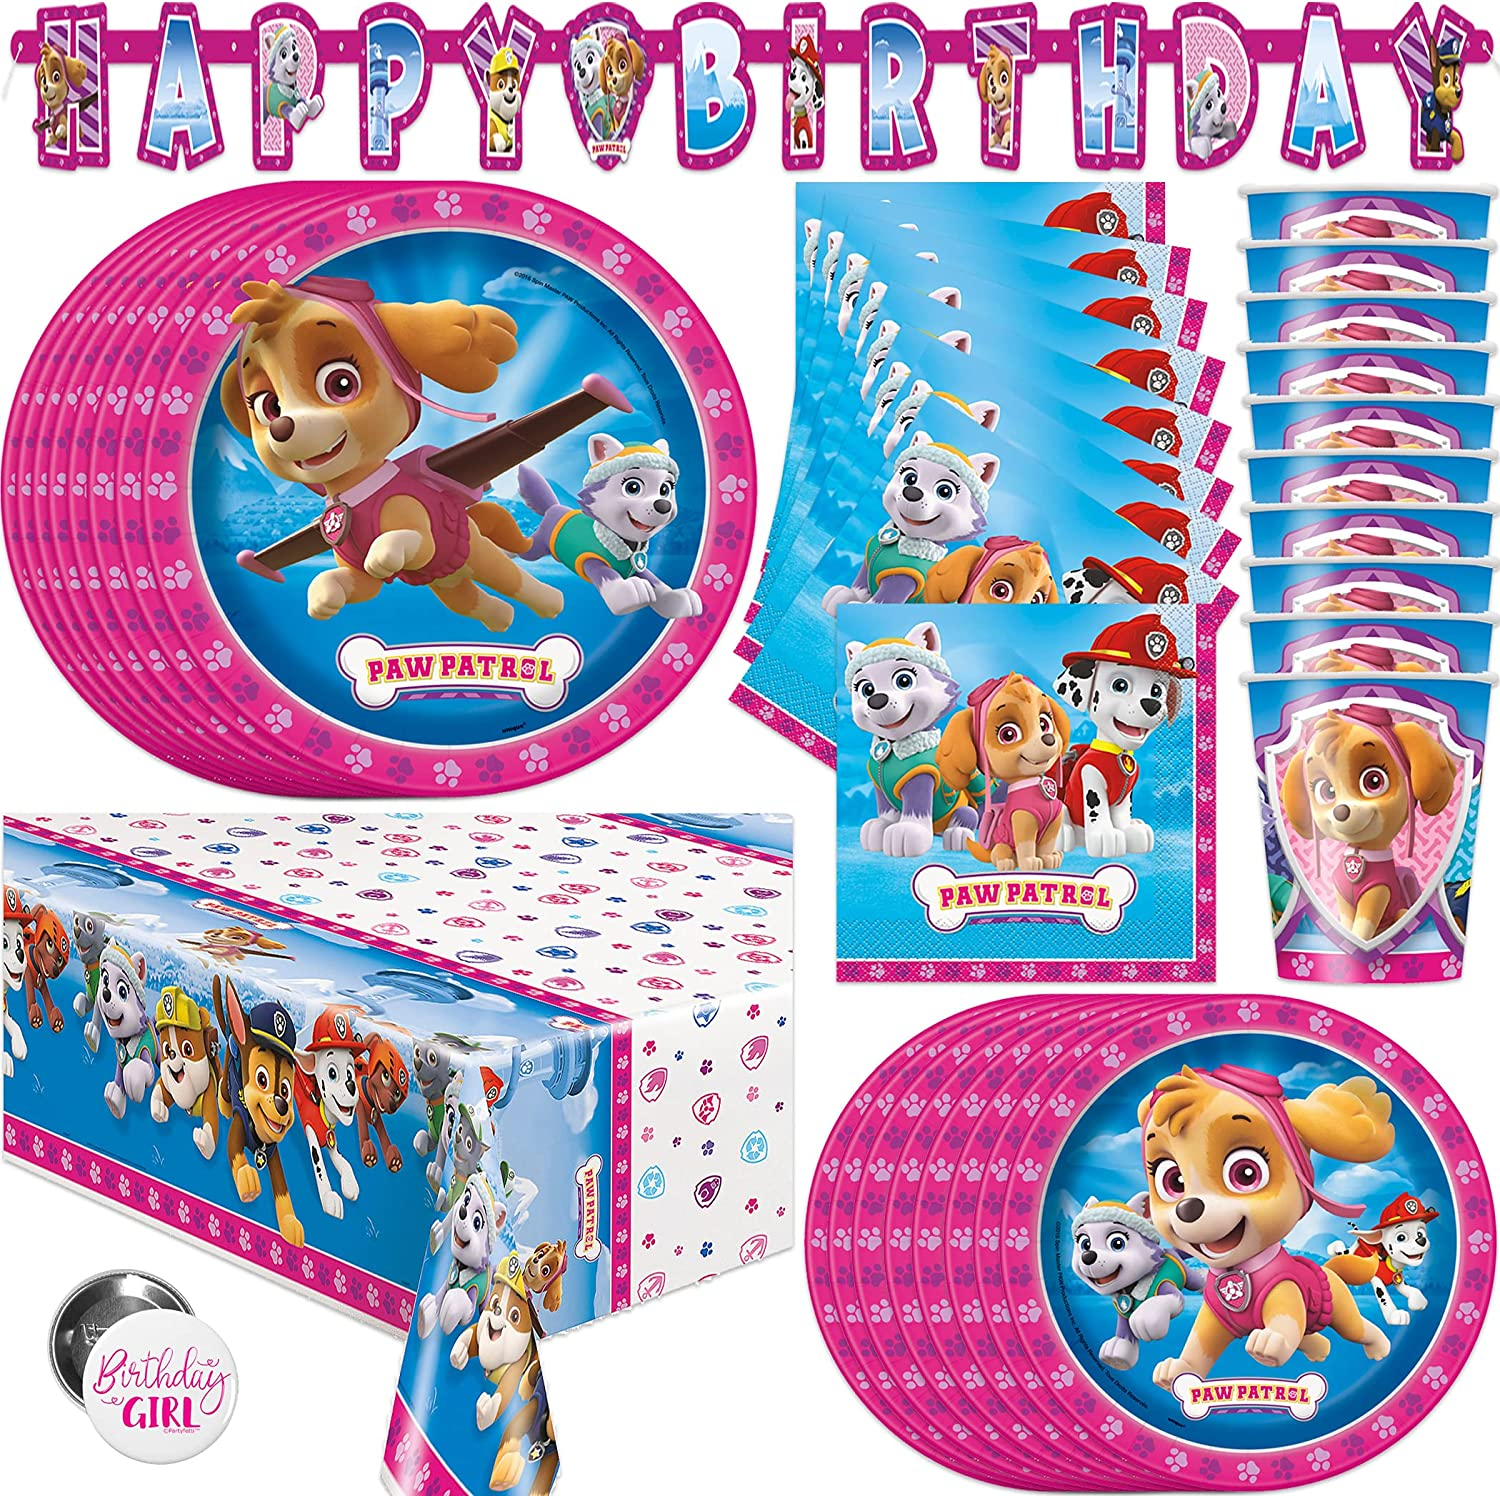 Pink Skye Paw Patrol Party Supplies and Decorations for Girls Birthday Party, Features Skye and Everest, Serves 16 Guests, Includes Tableware and Decor with Table Cover, Banner, Plates, Napkins & More